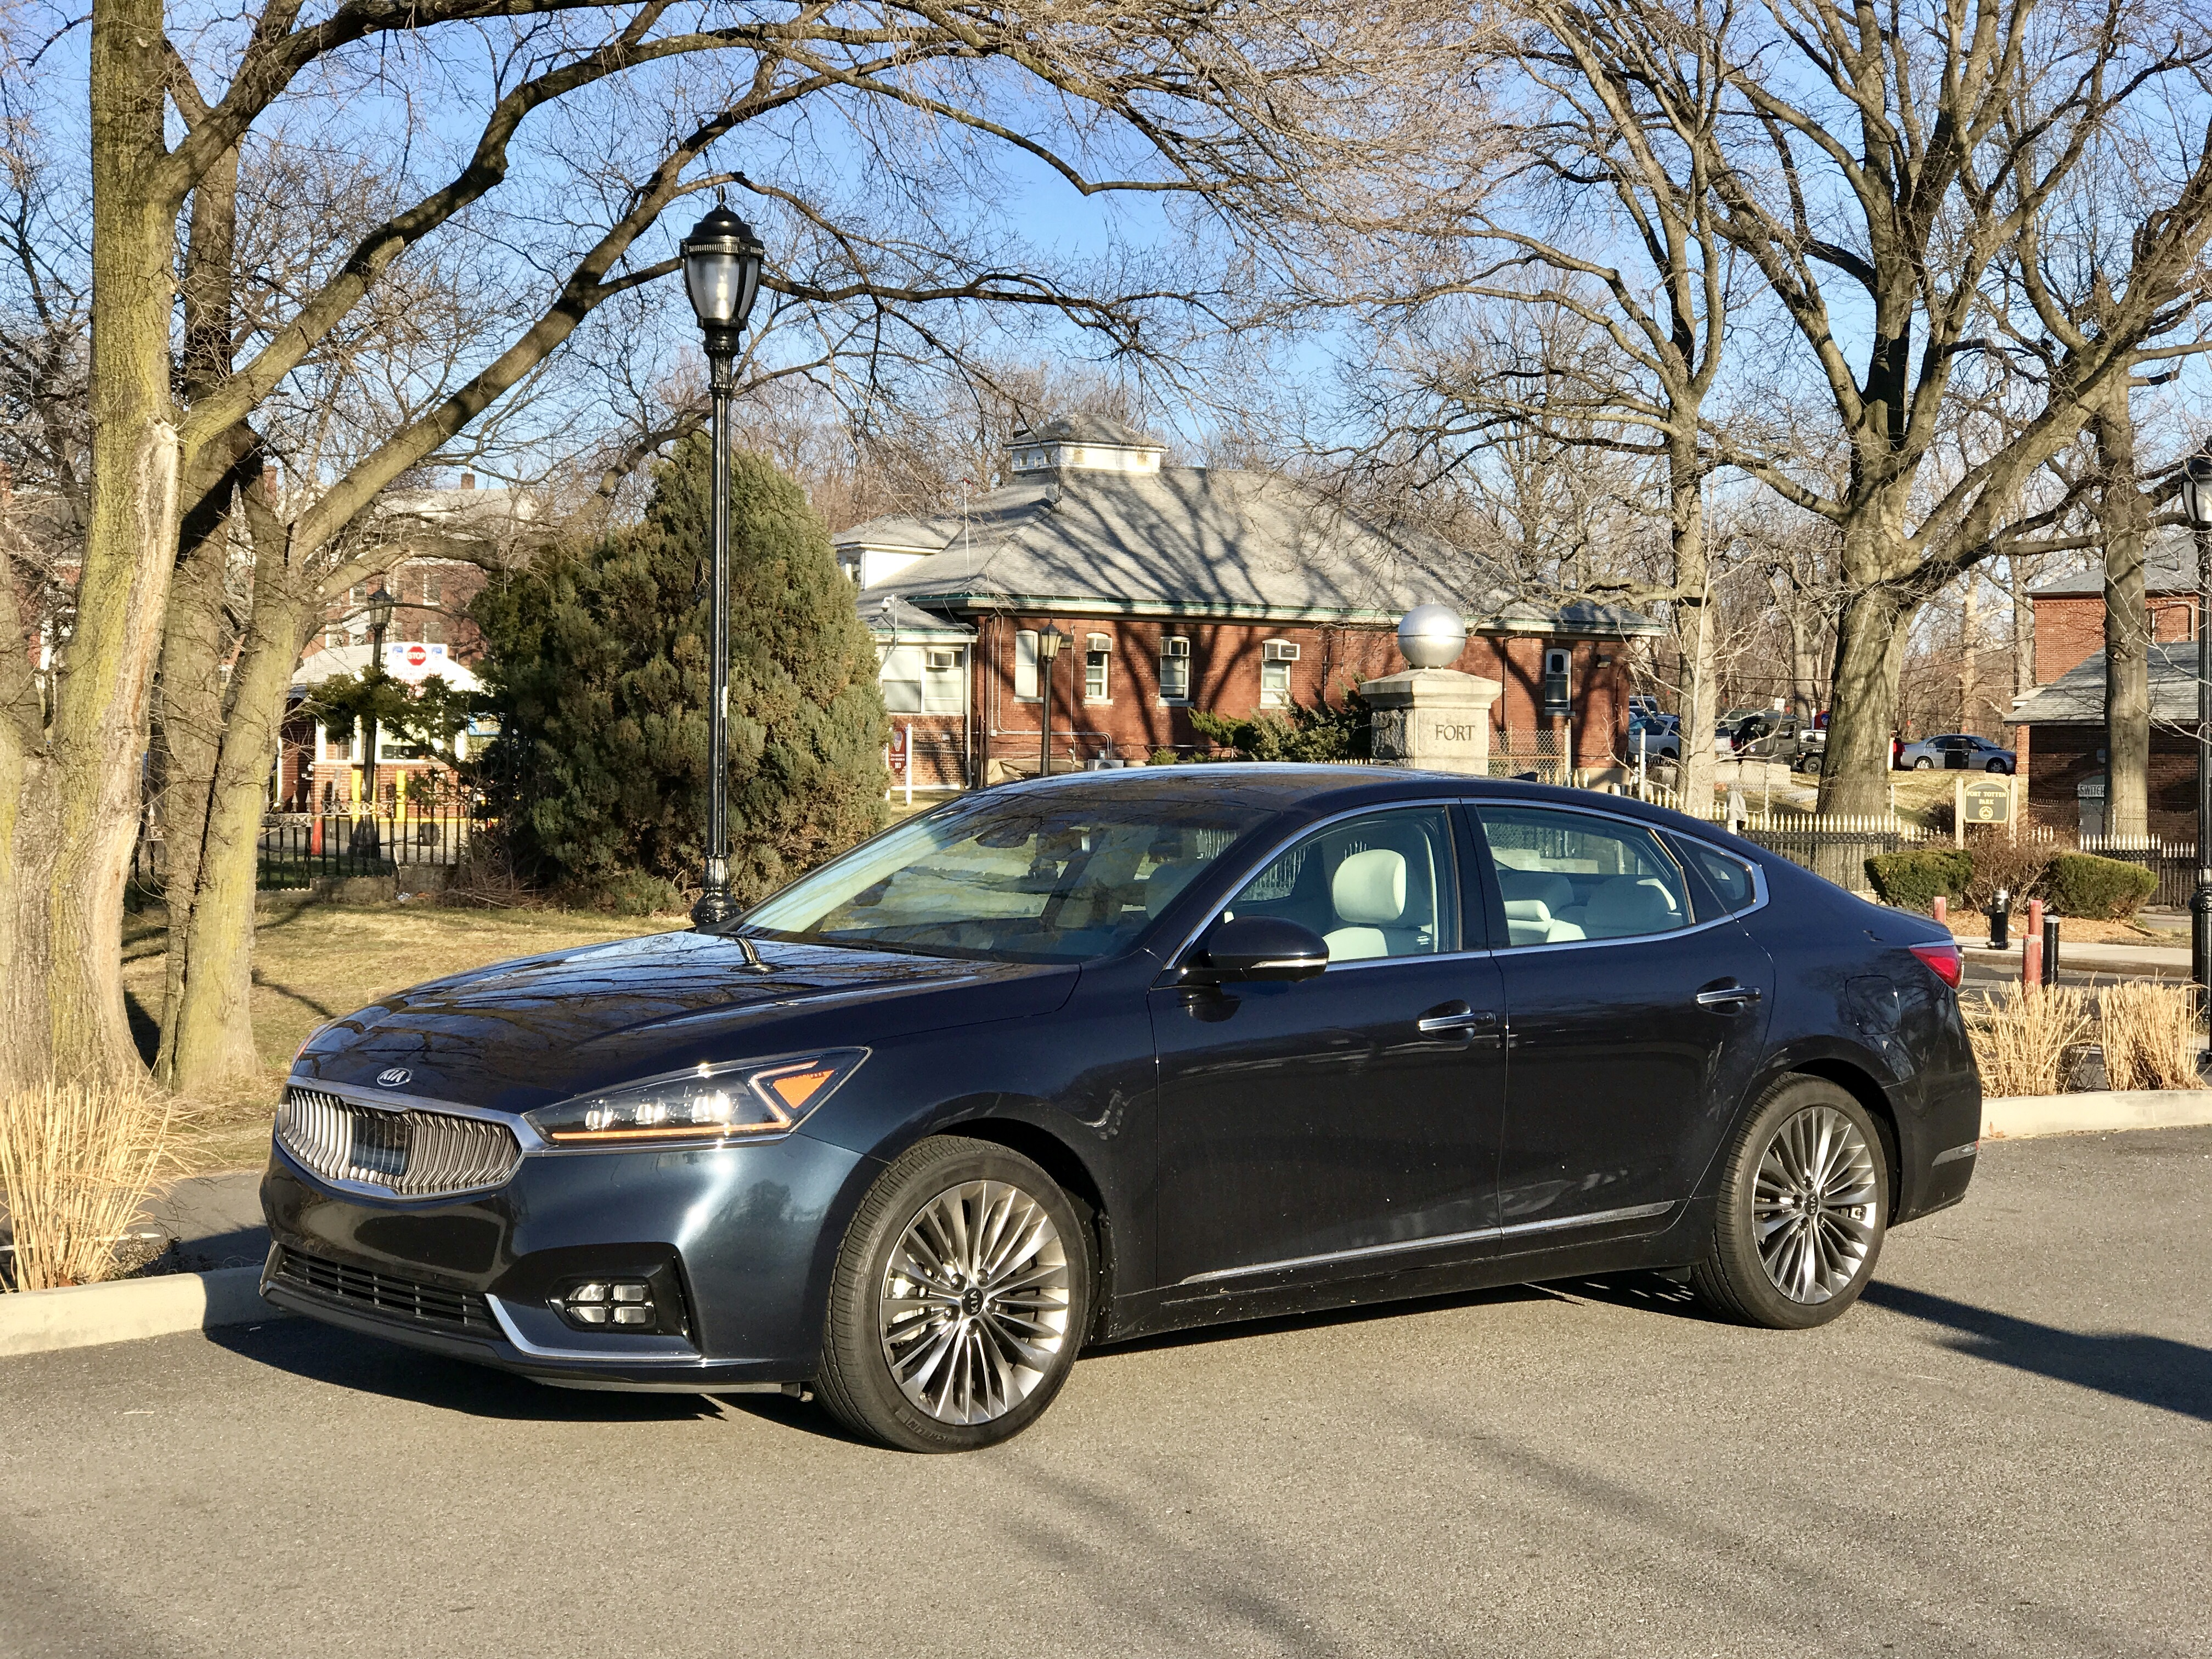 review and test drive 2017 kia cadenza limited frequent business traveler. Black Bedroom Furniture Sets. Home Design Ideas